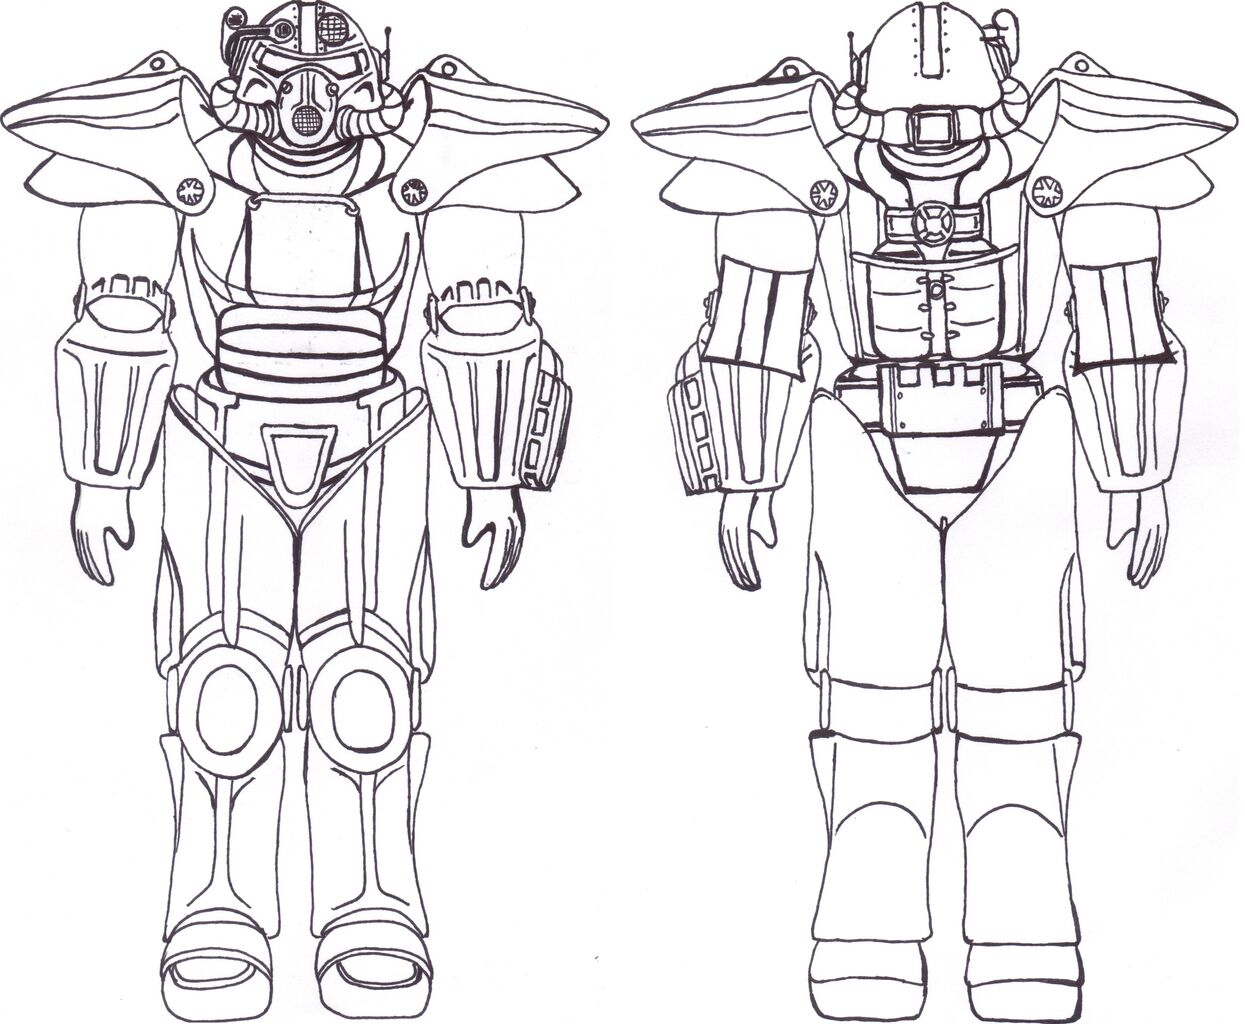 Fallout 3 coloring pages - View larger image image